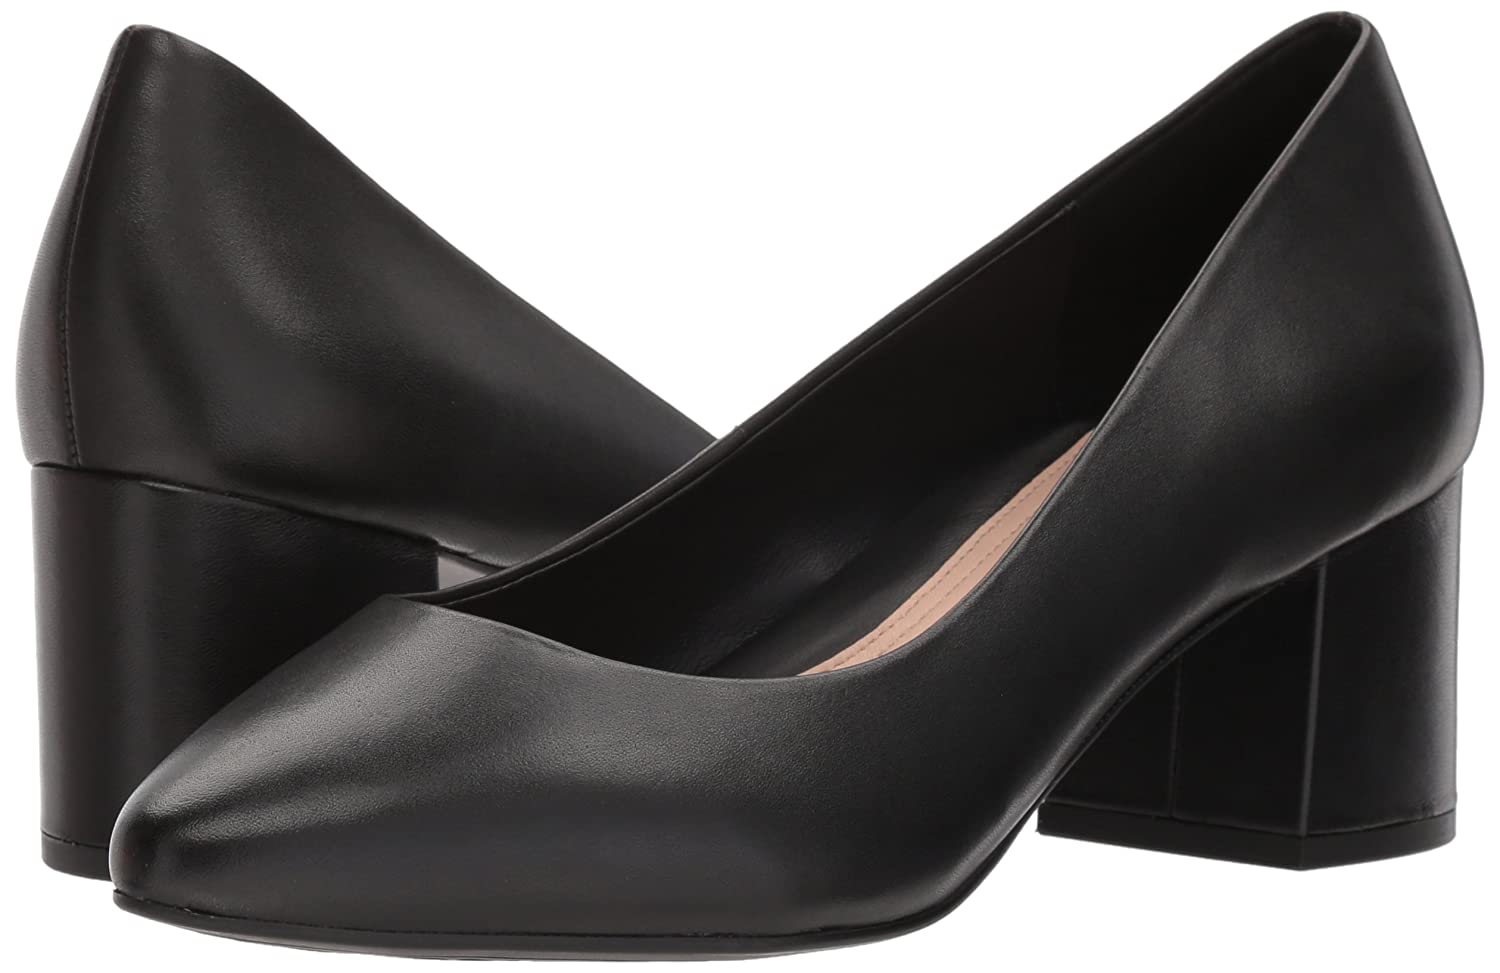 Taryn Rose Womens Rochelle Dress Calf Pump